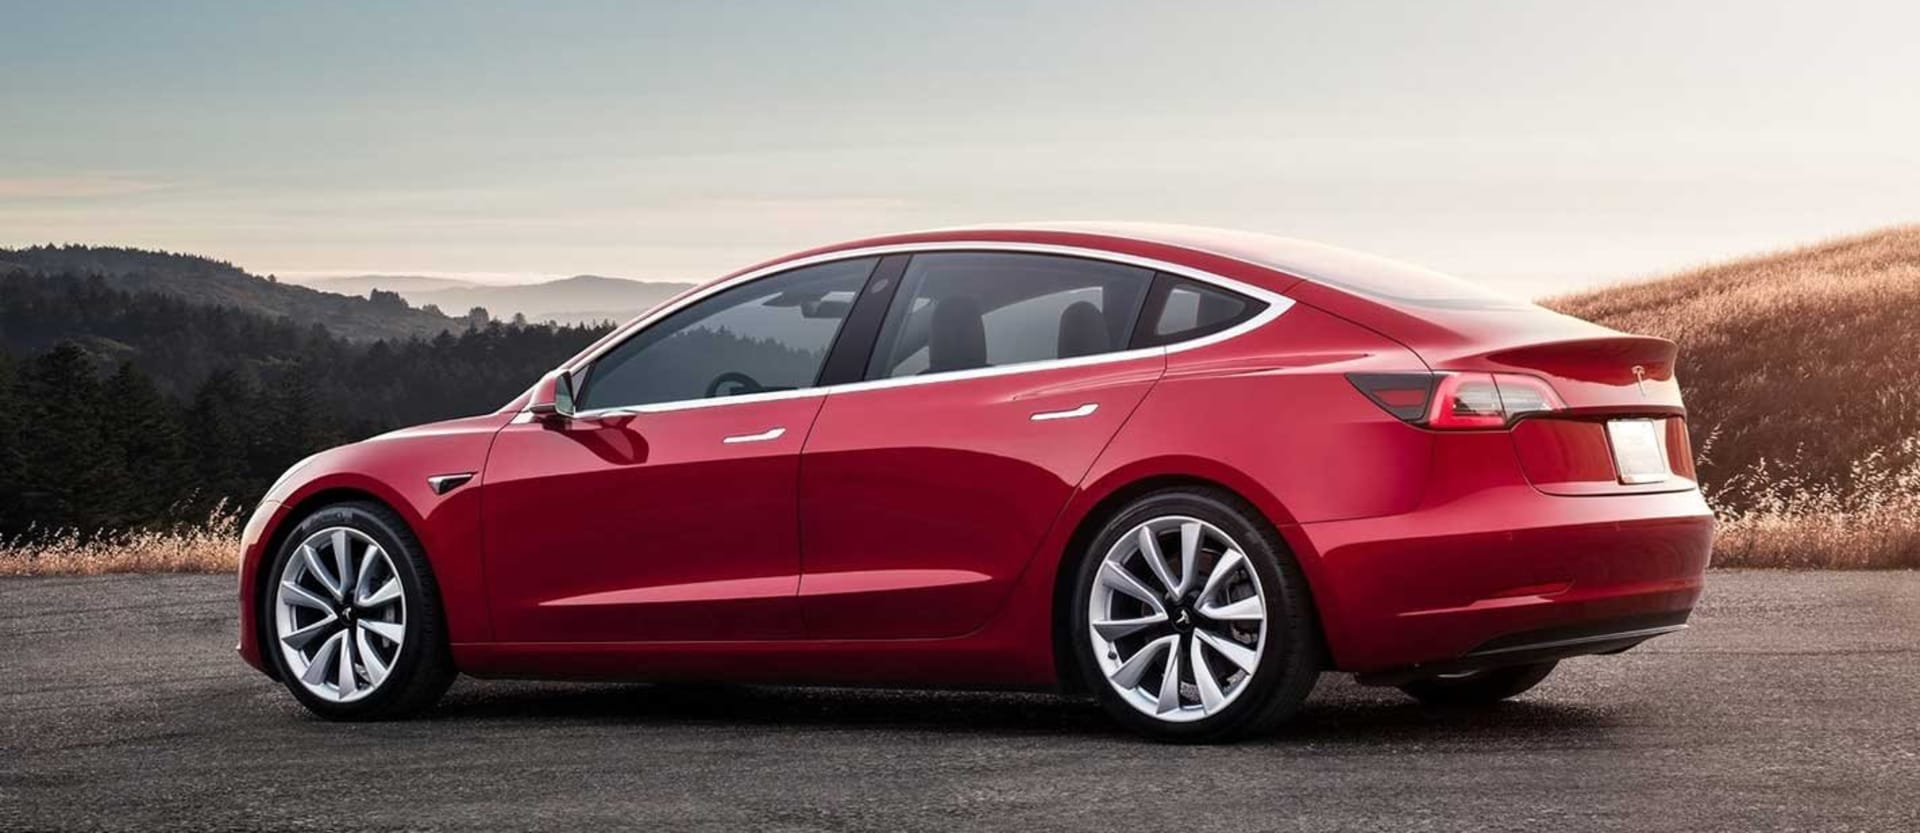 2019 Tesla Model 3 Performance configurator